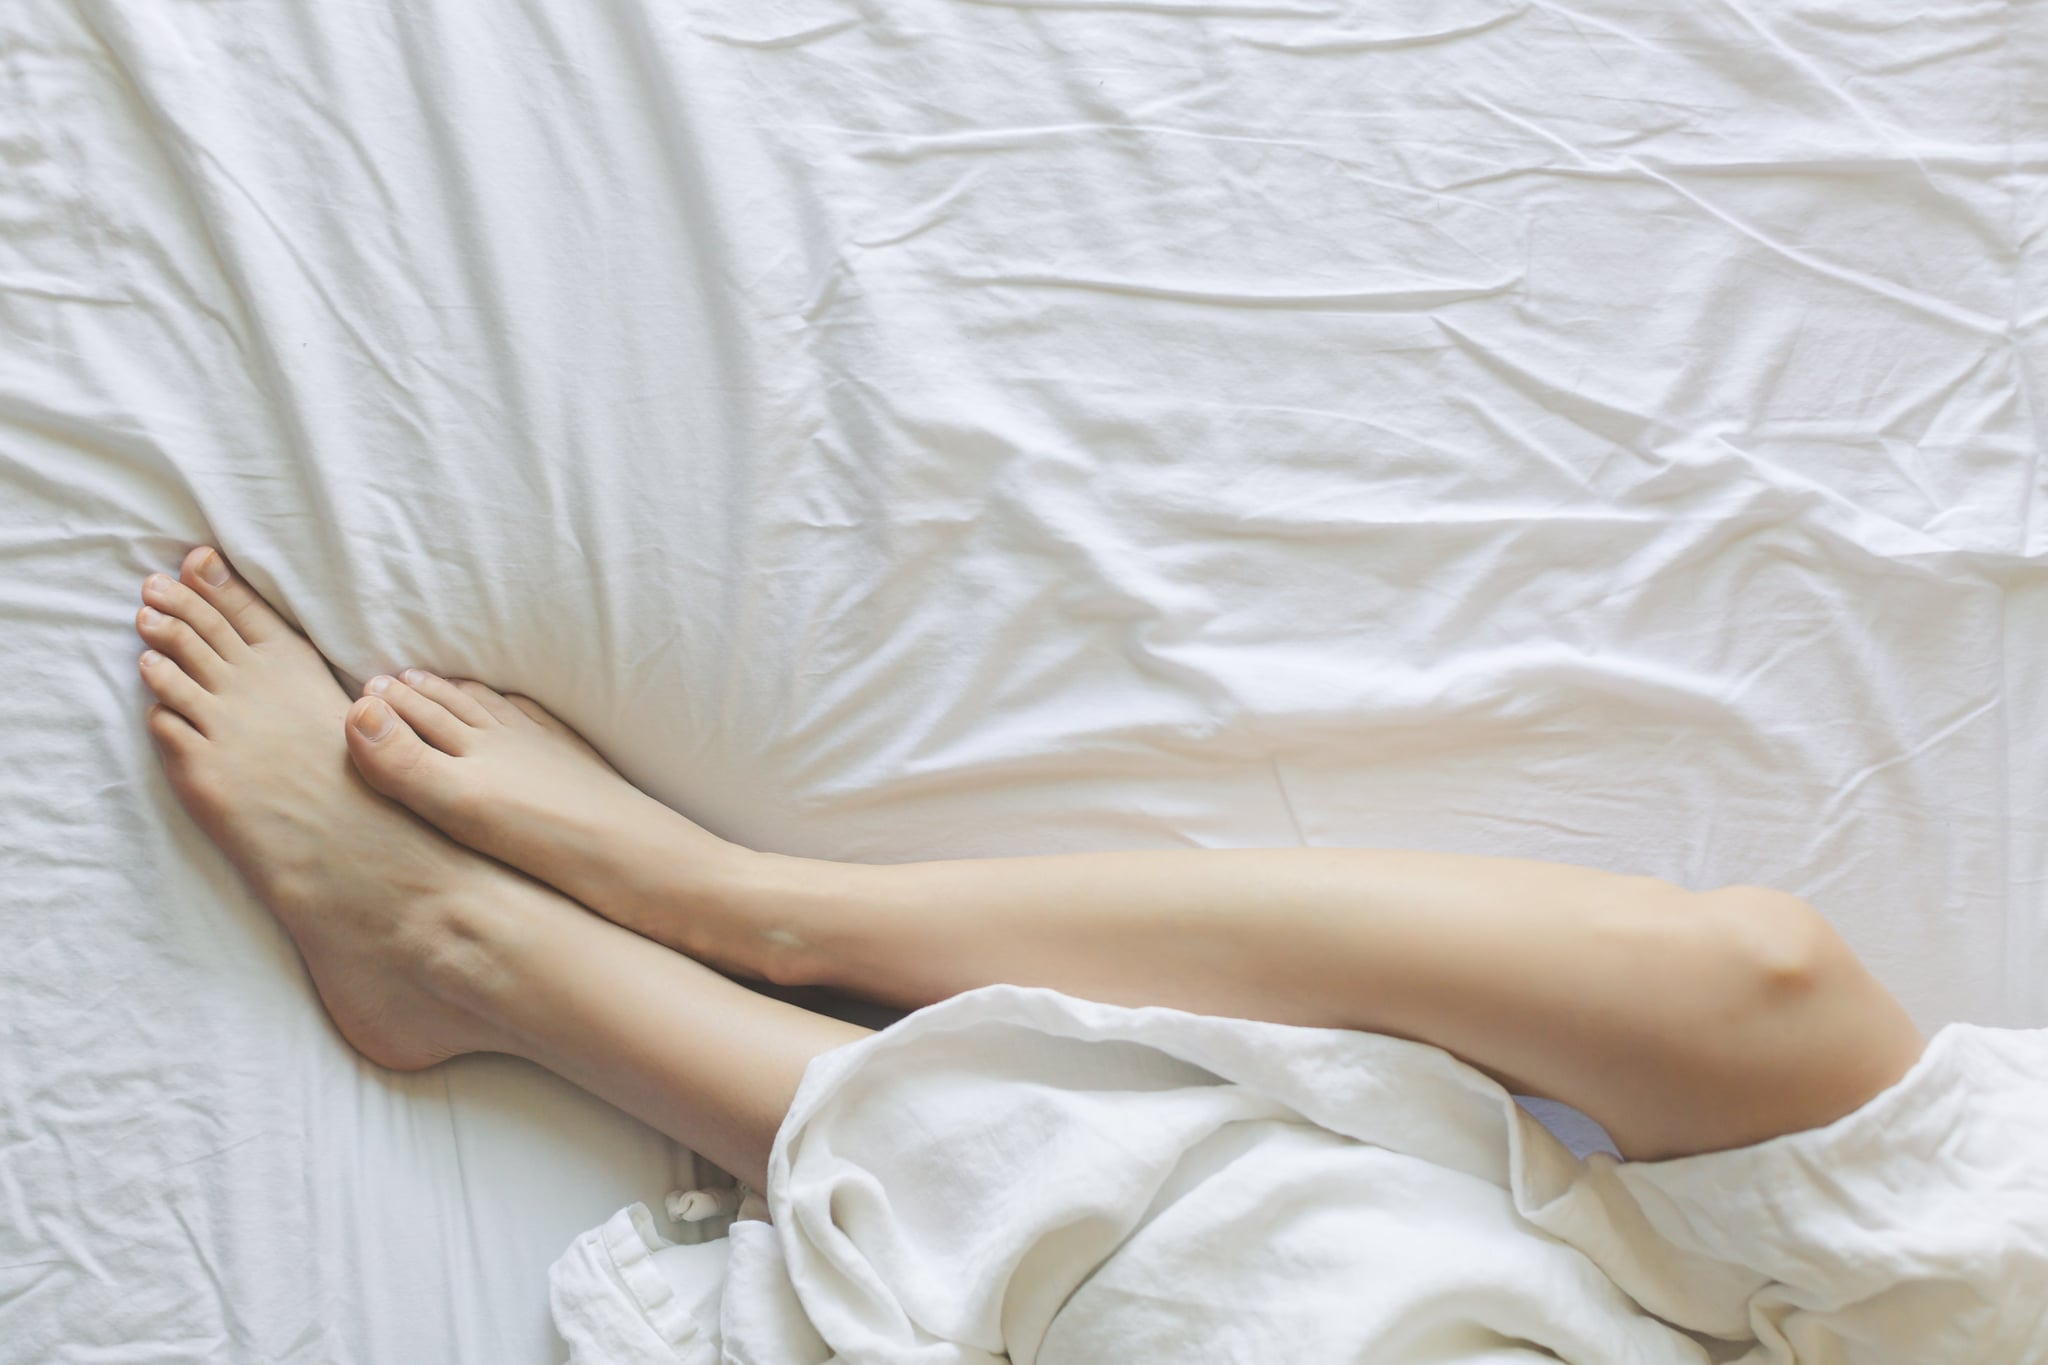 The STIs That Condoms Can't Completely Protect You From, According to an Ob-Gyn